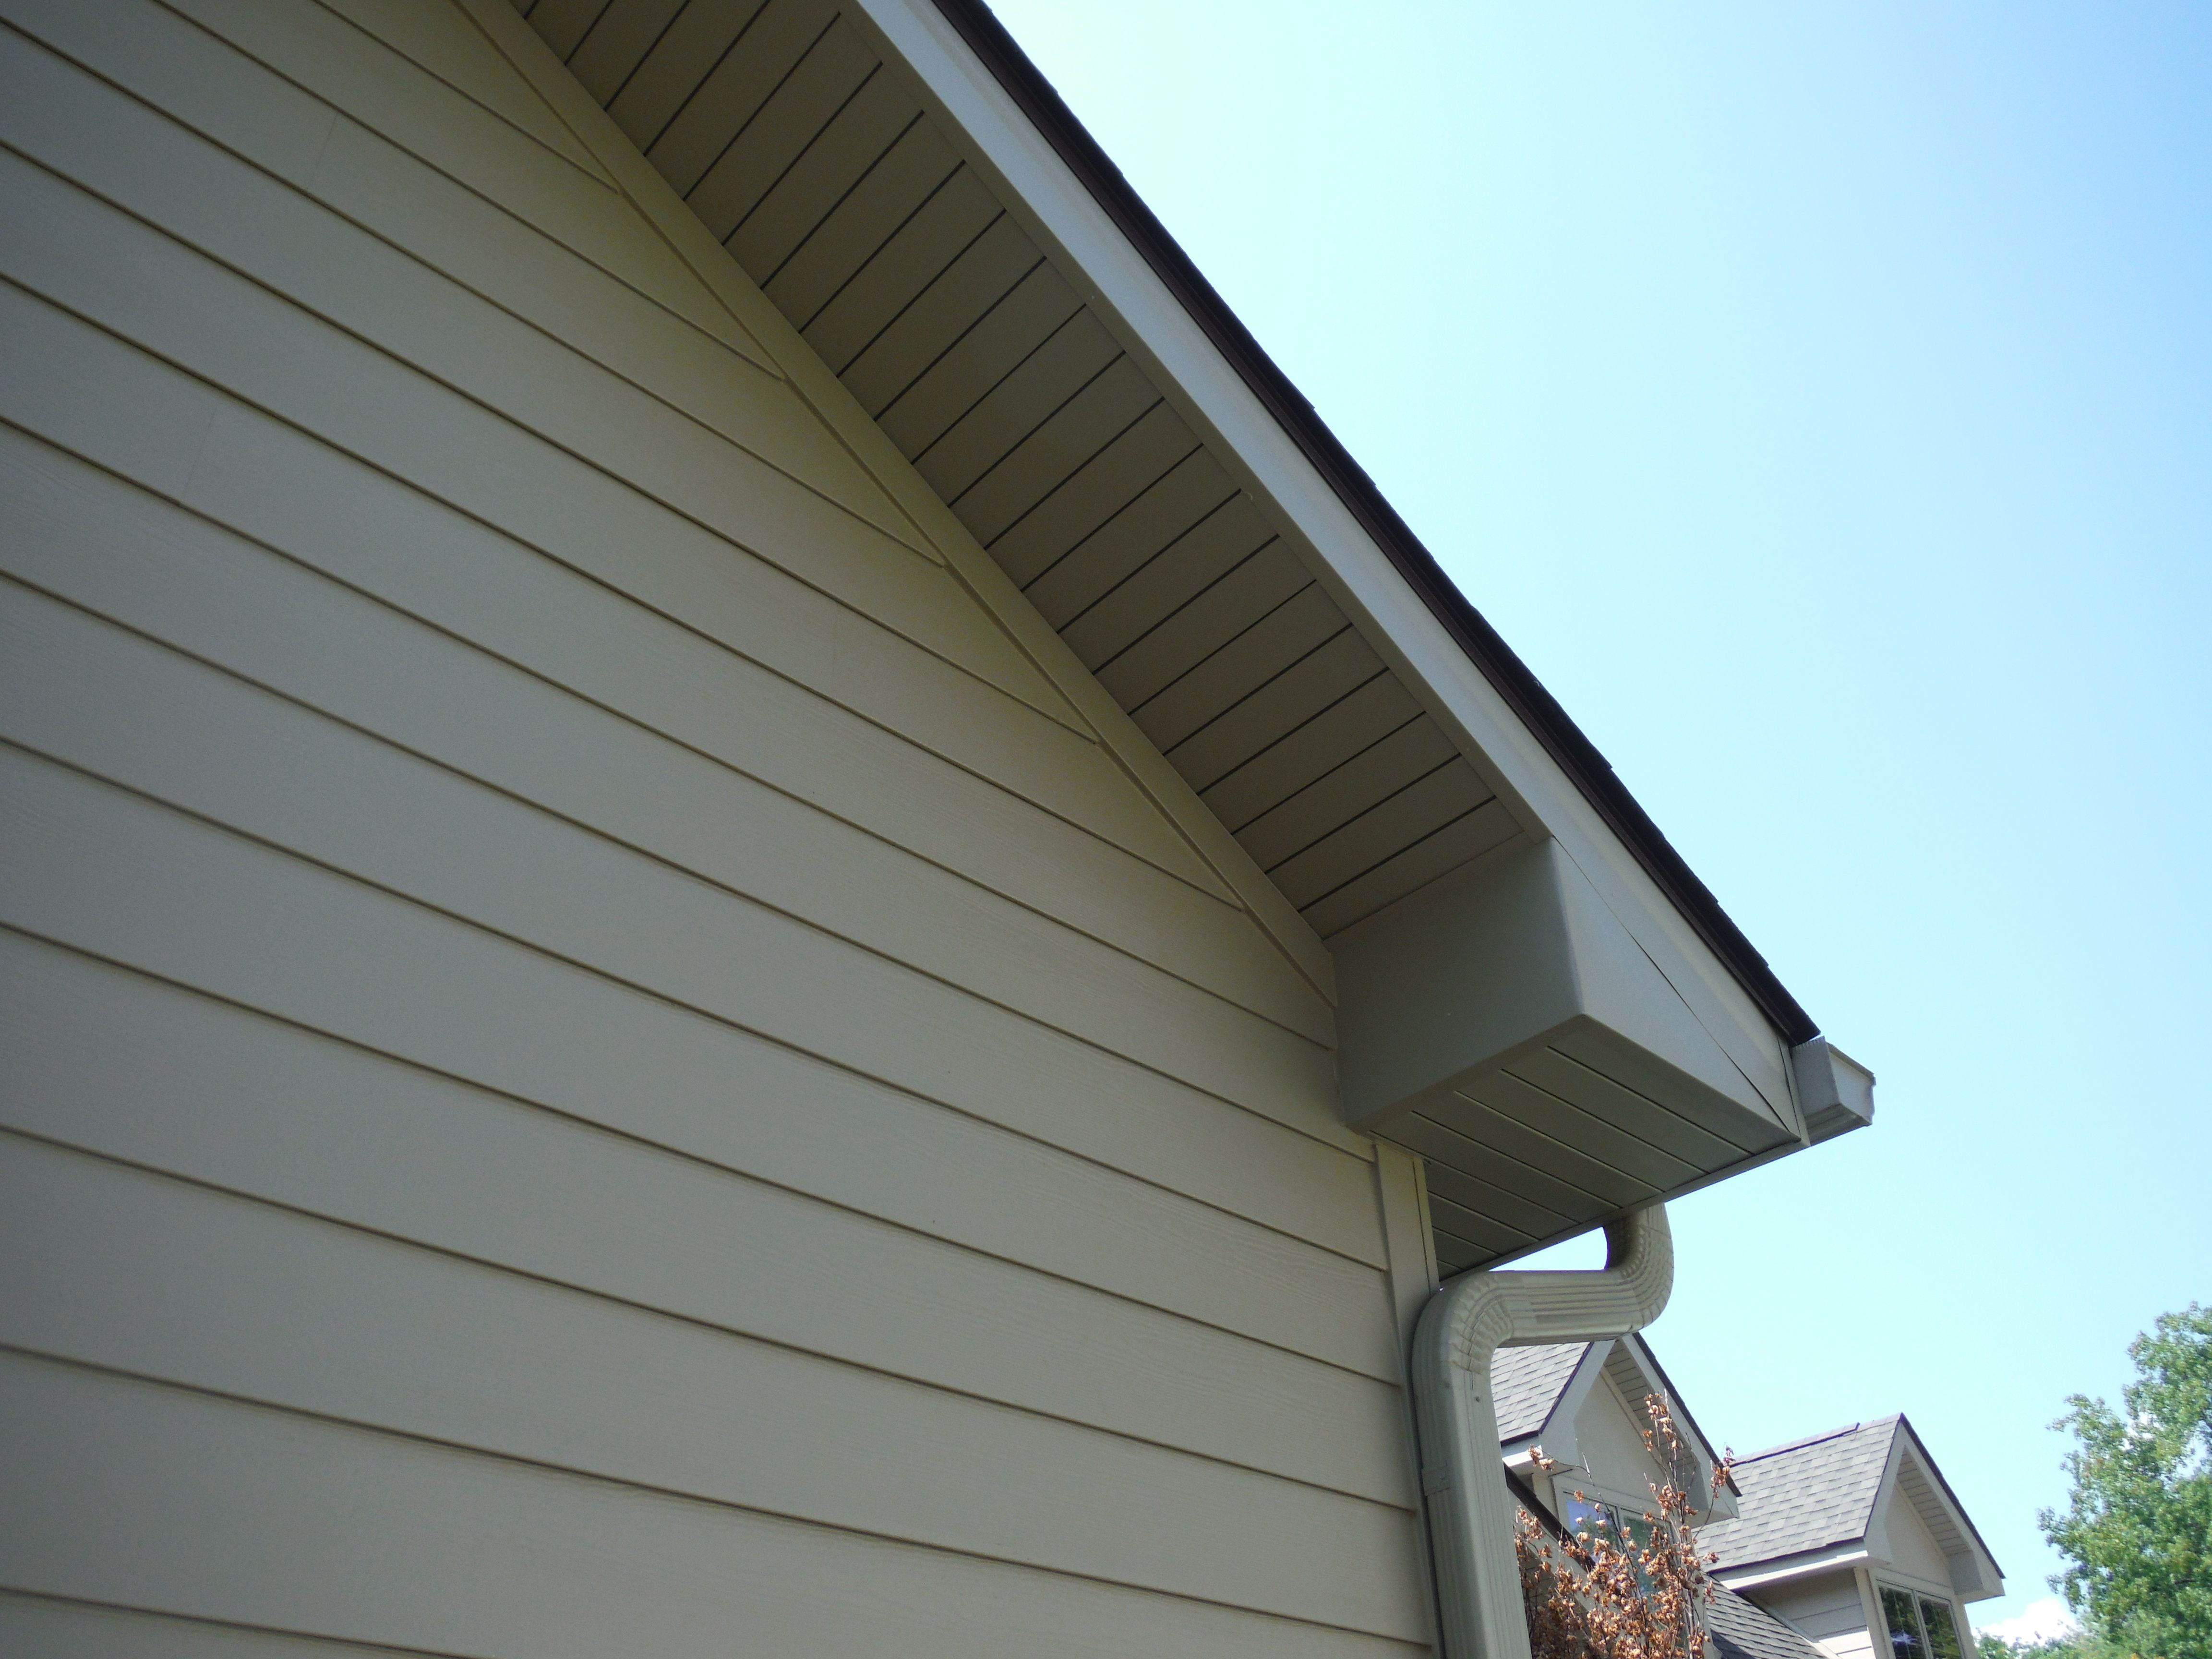 Another Close Up Picture Of Jh Lap Siding In Khaki Brown